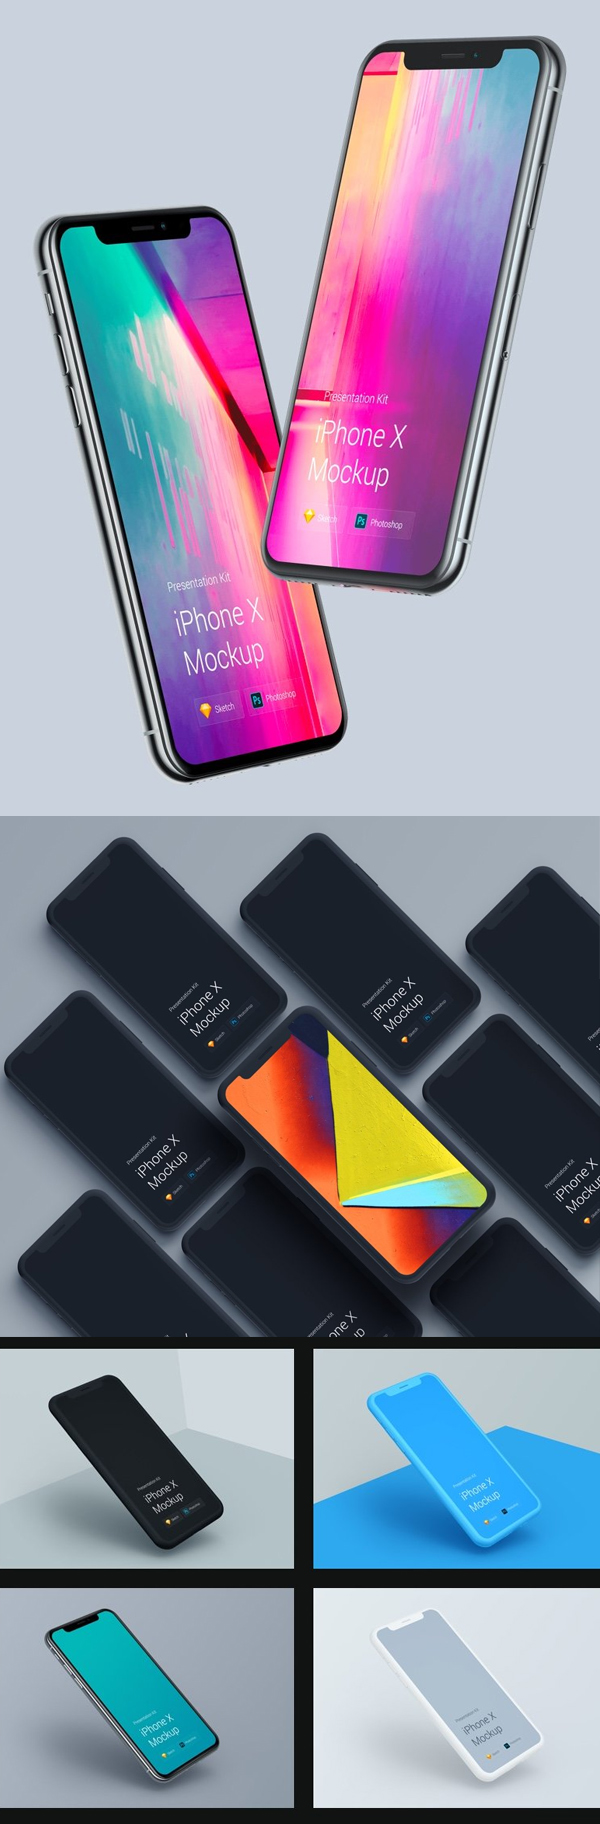 iPhone X Mockups Presentation Kit